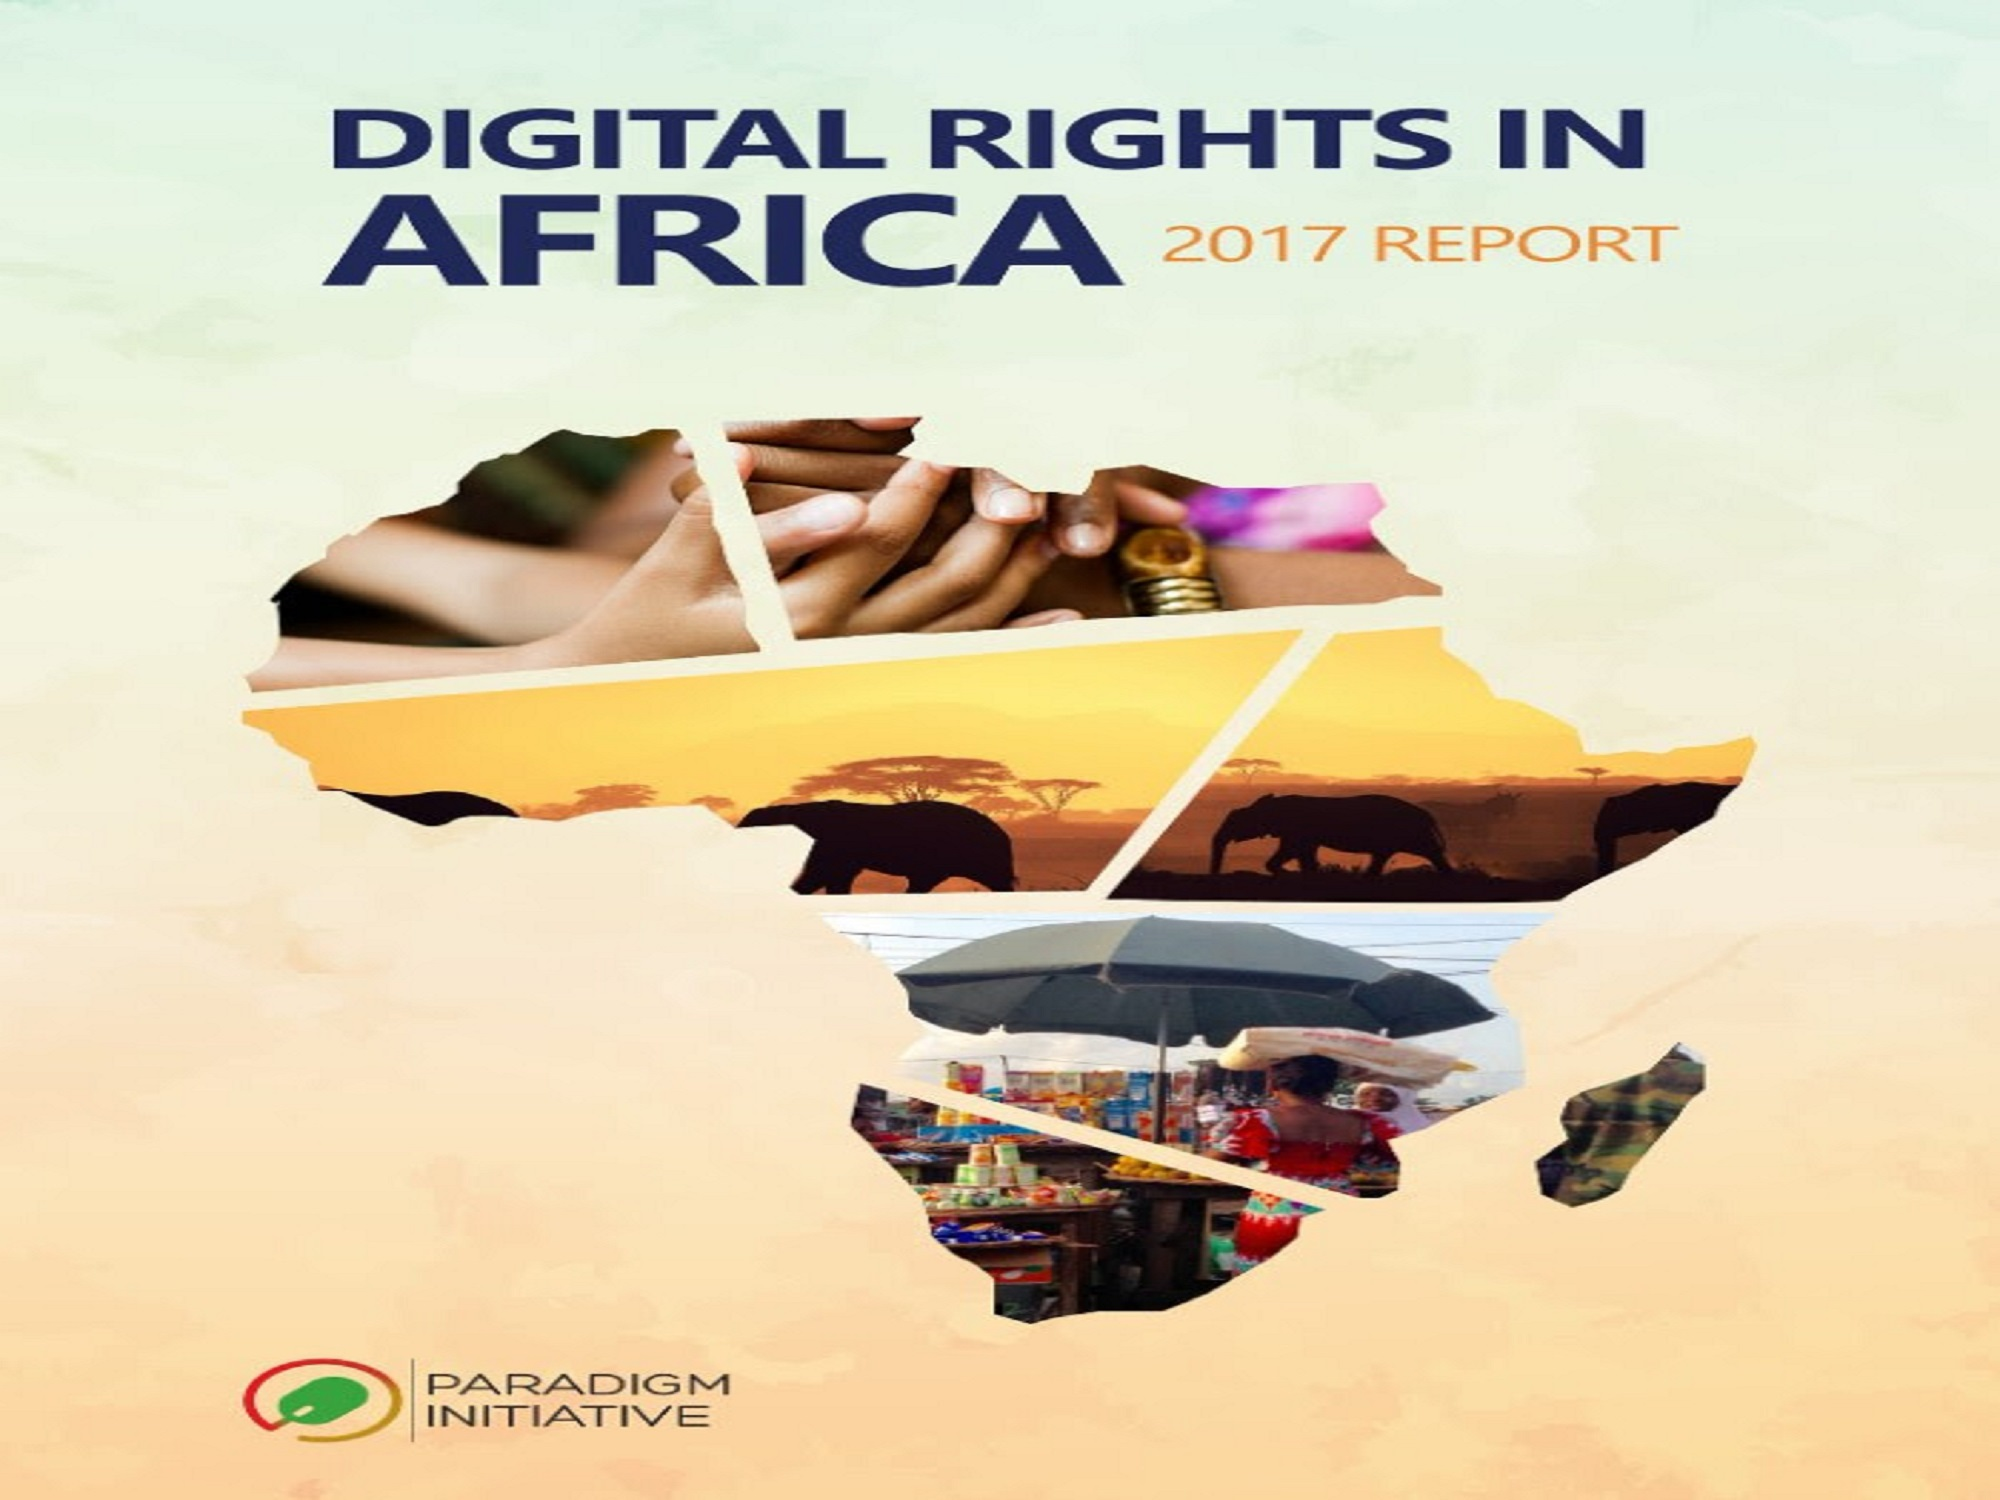 Digital Rights in Africa